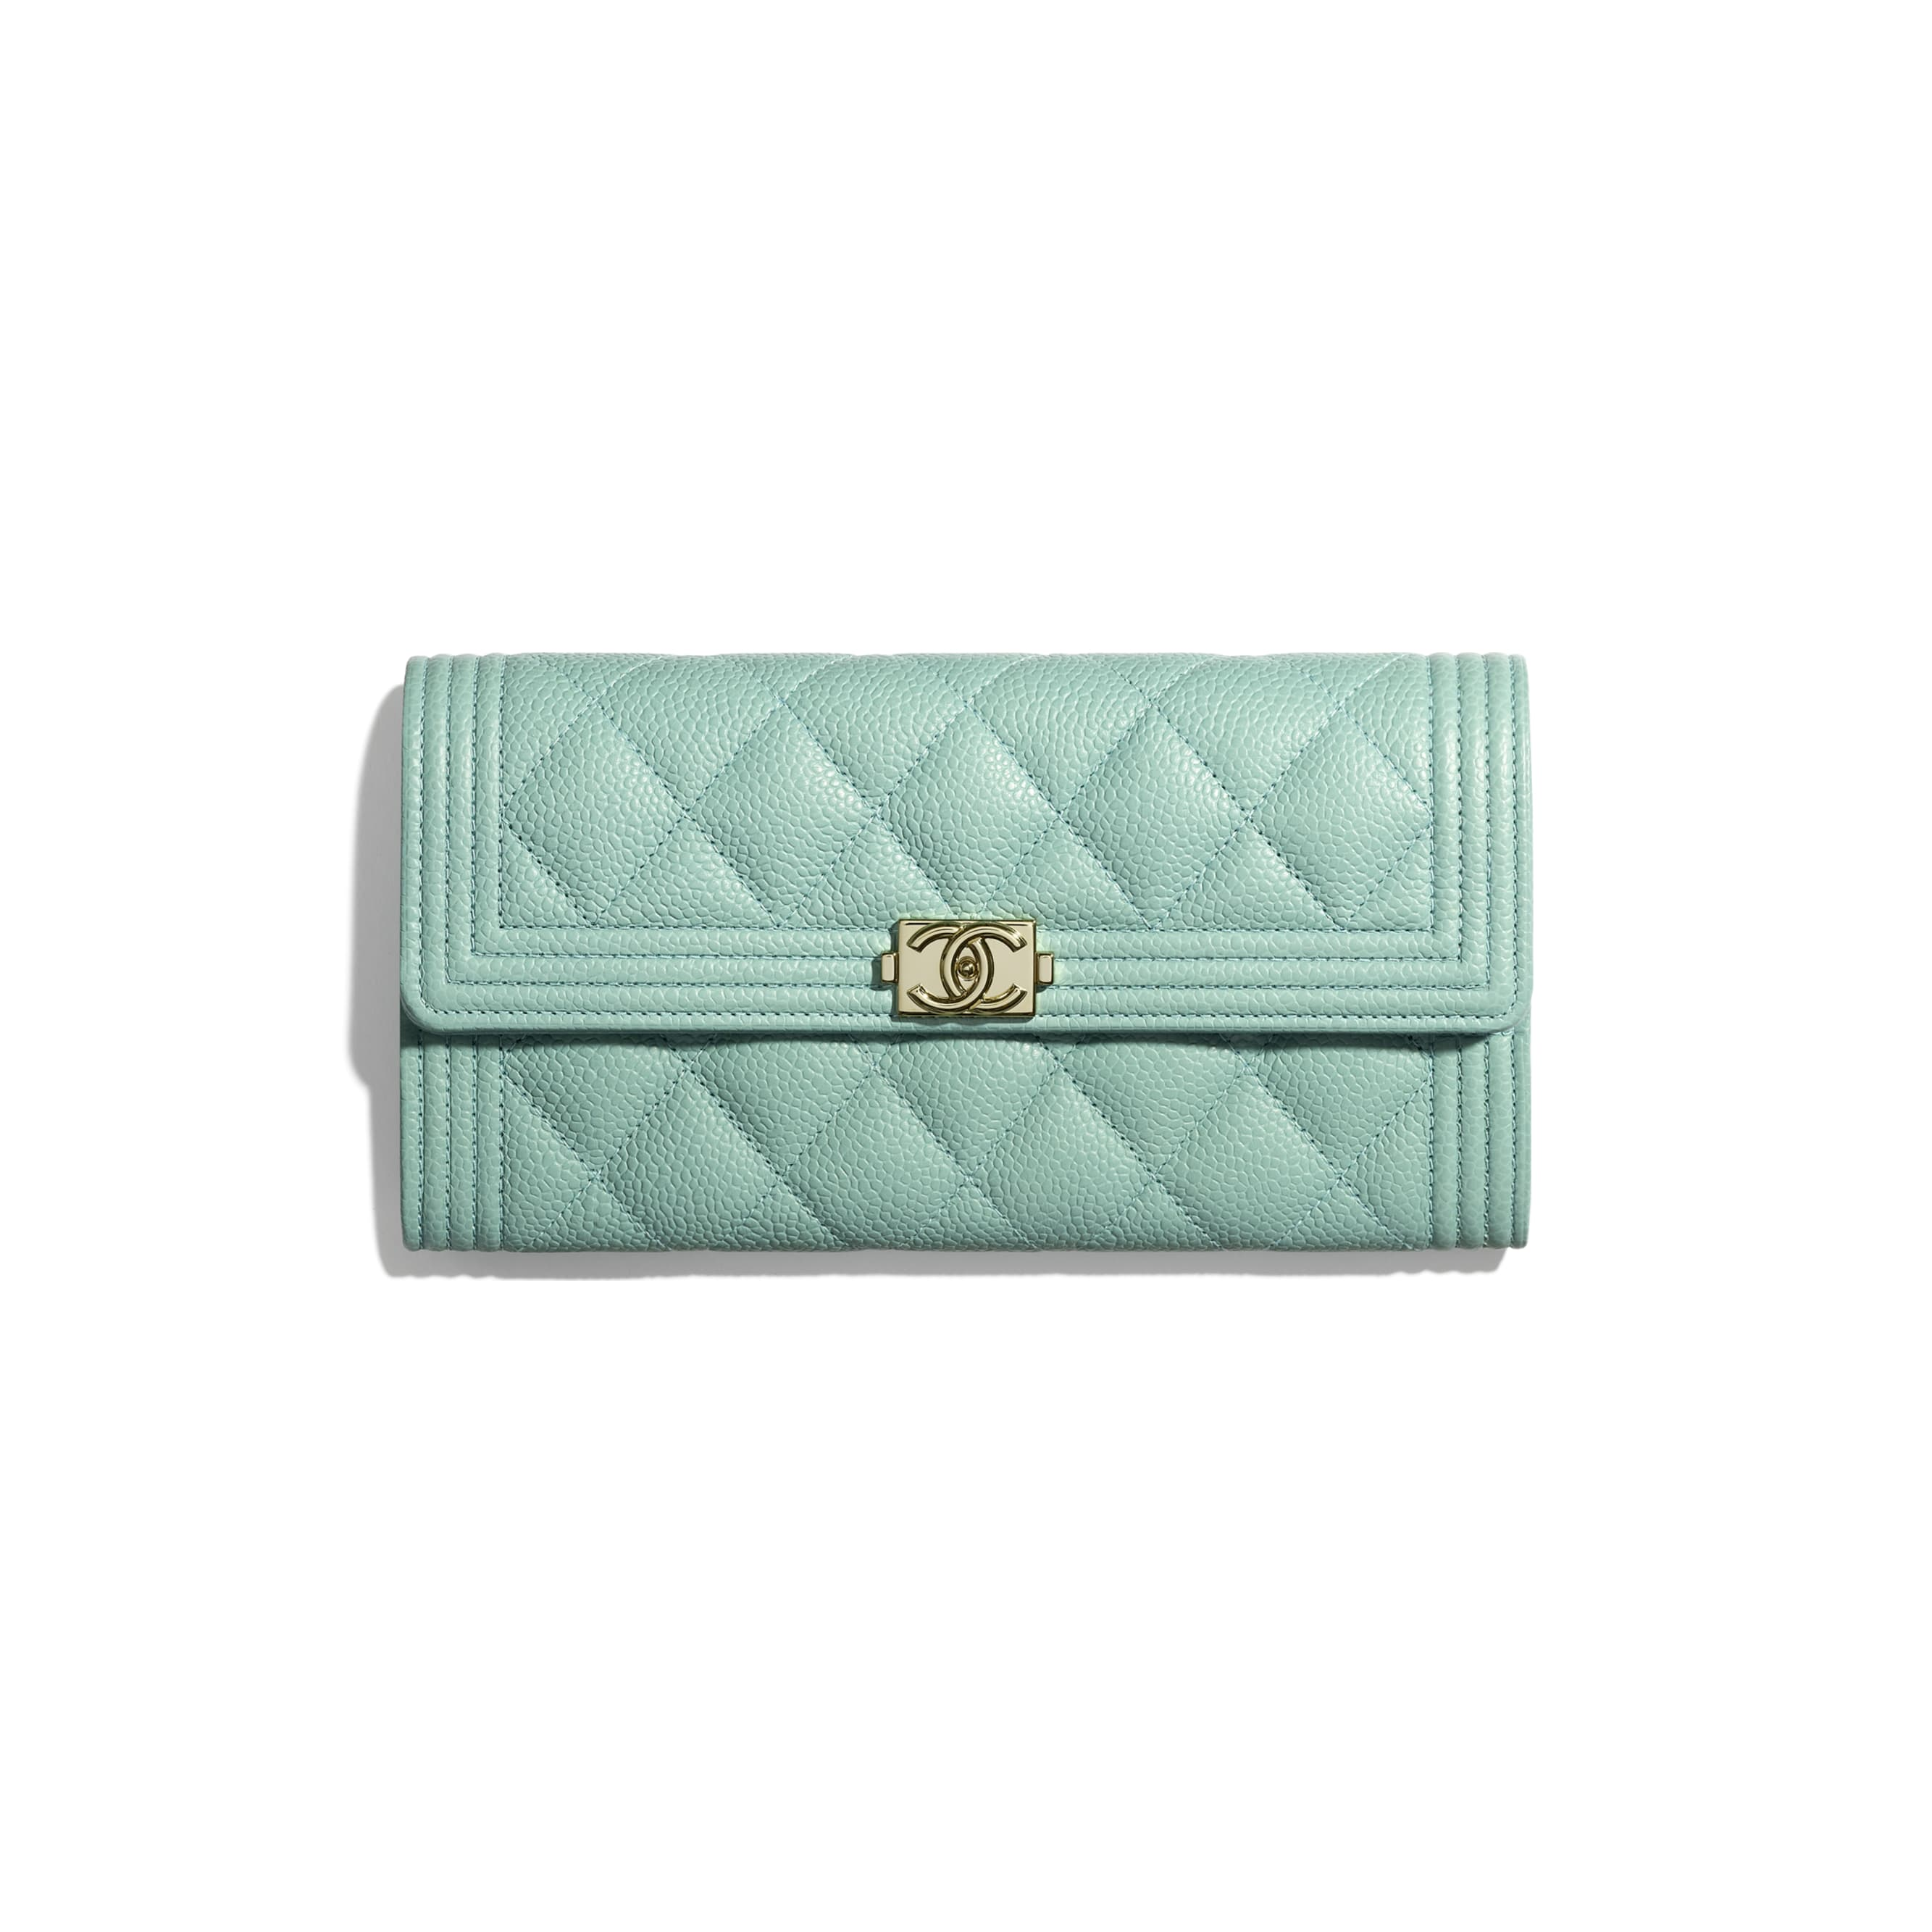 BOY CHANEL Long Flap Wallet - Blue - Grained Calfskin & Gold-Tone Metal - Default view - see standard sized version